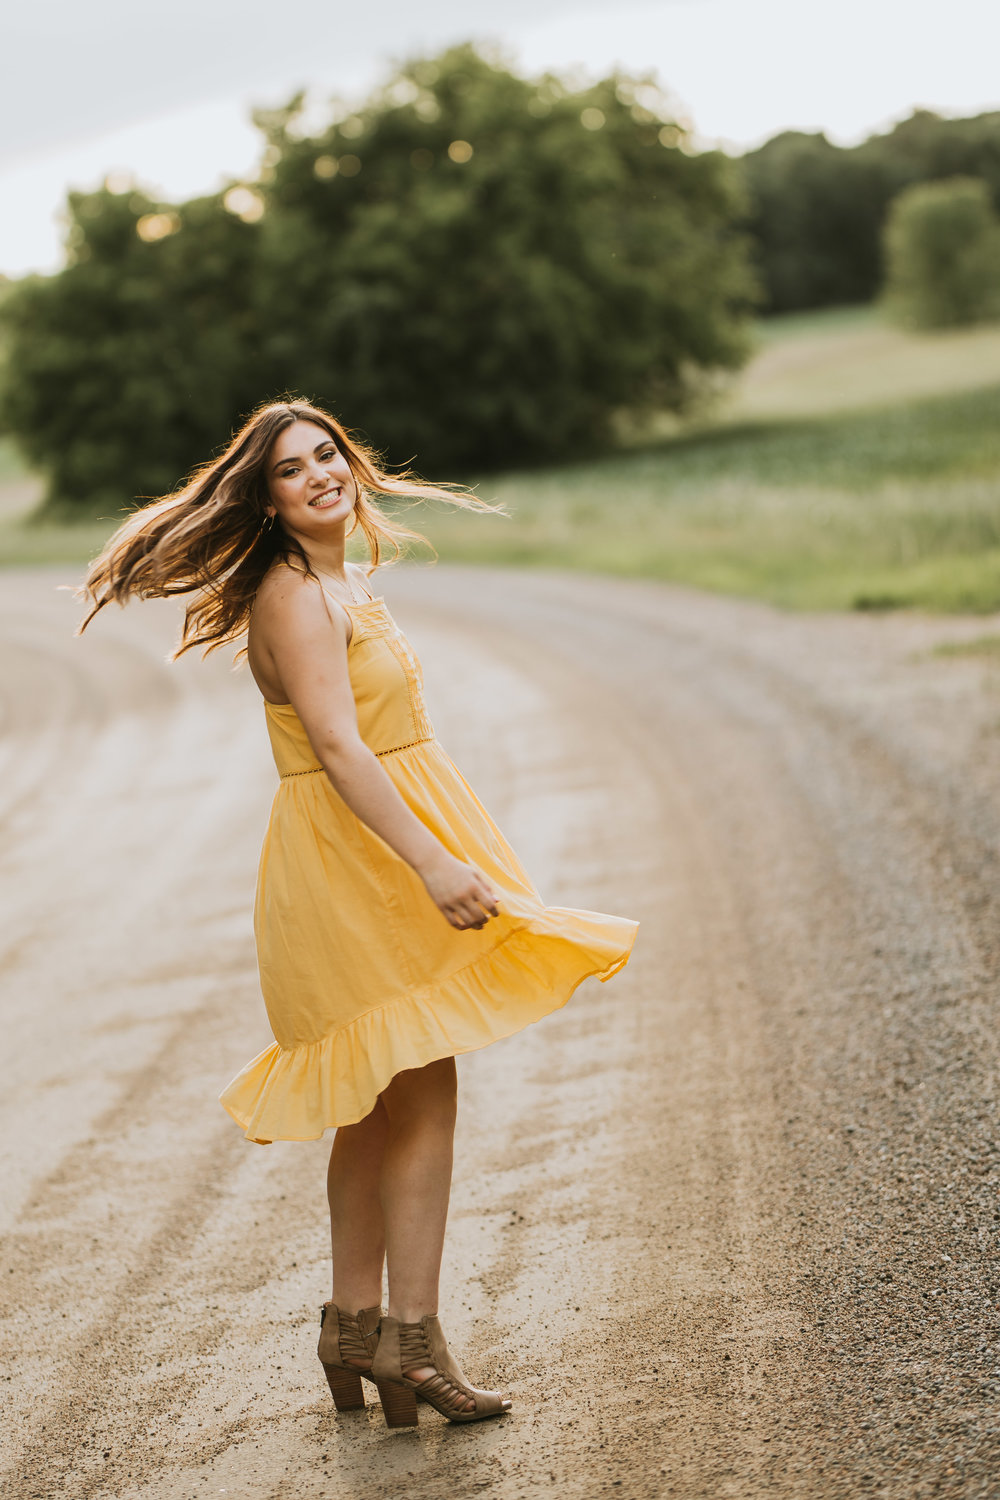 girl in yellow dress in the country